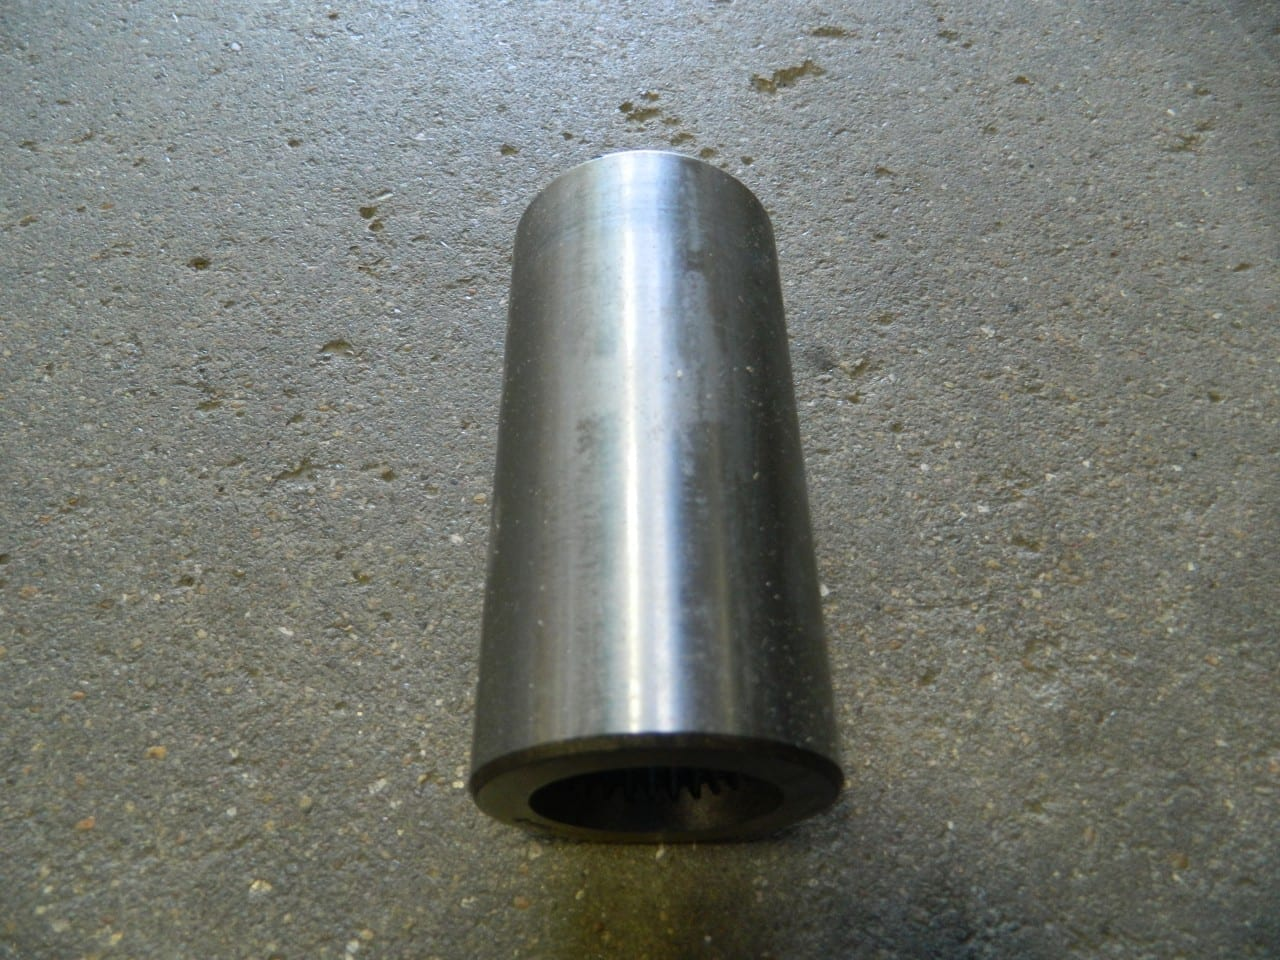 27 spline female coupler used between GM 205 transfer case and TH350 or 700R4 automatic